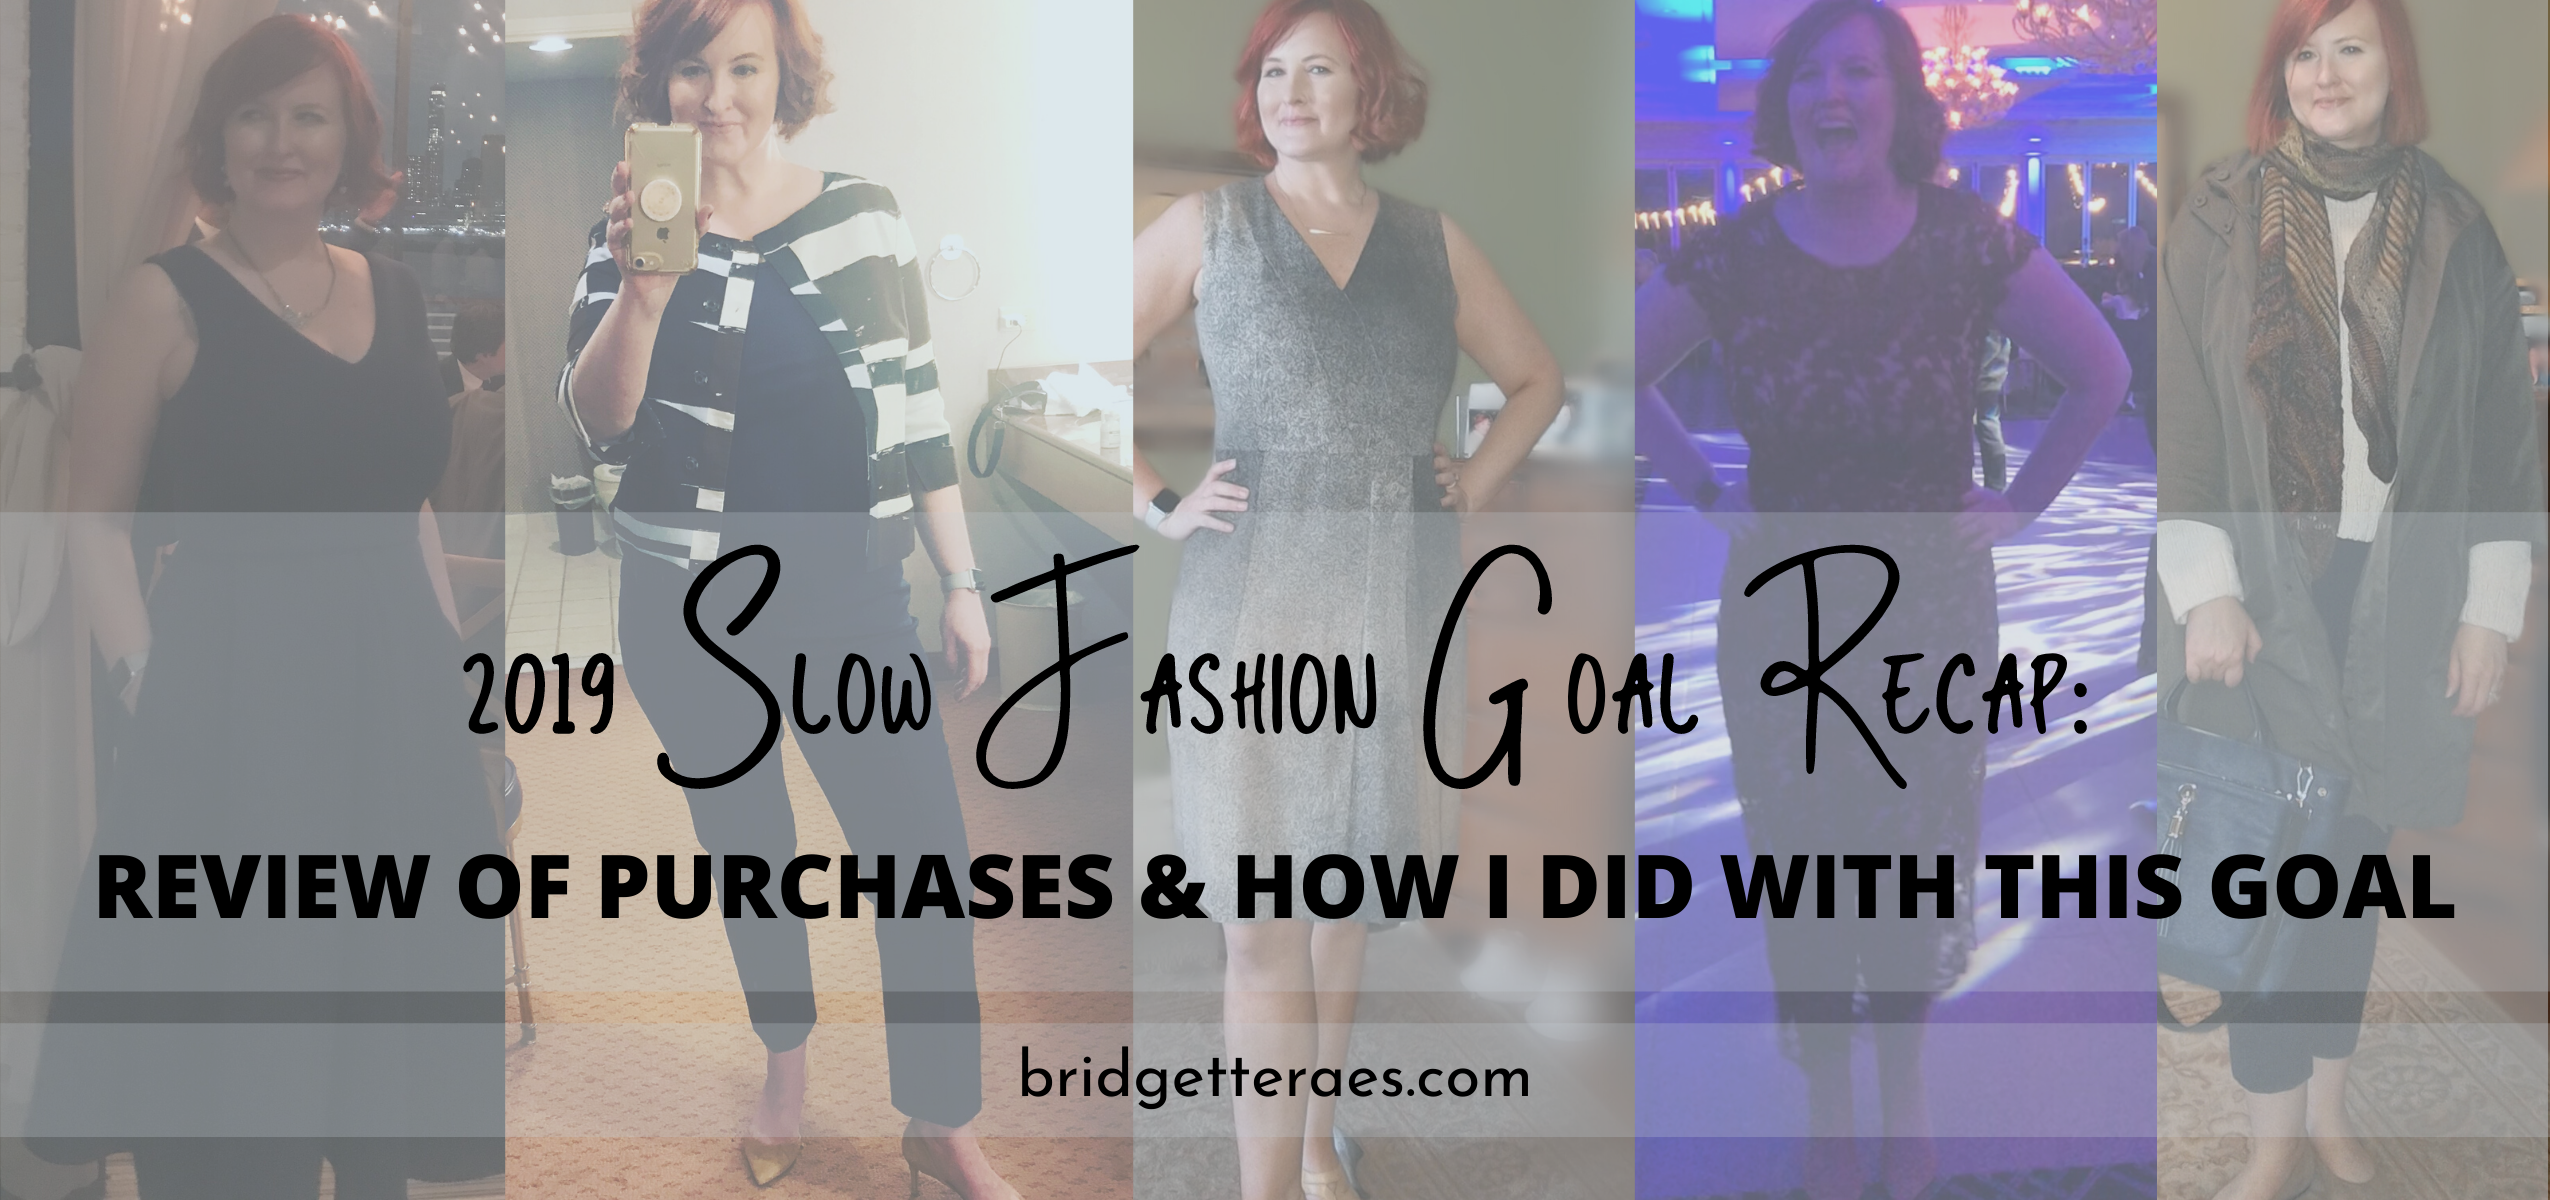 2019 Slow Fashion Goal Recap: Review of Purchases & How I Did with This Goal